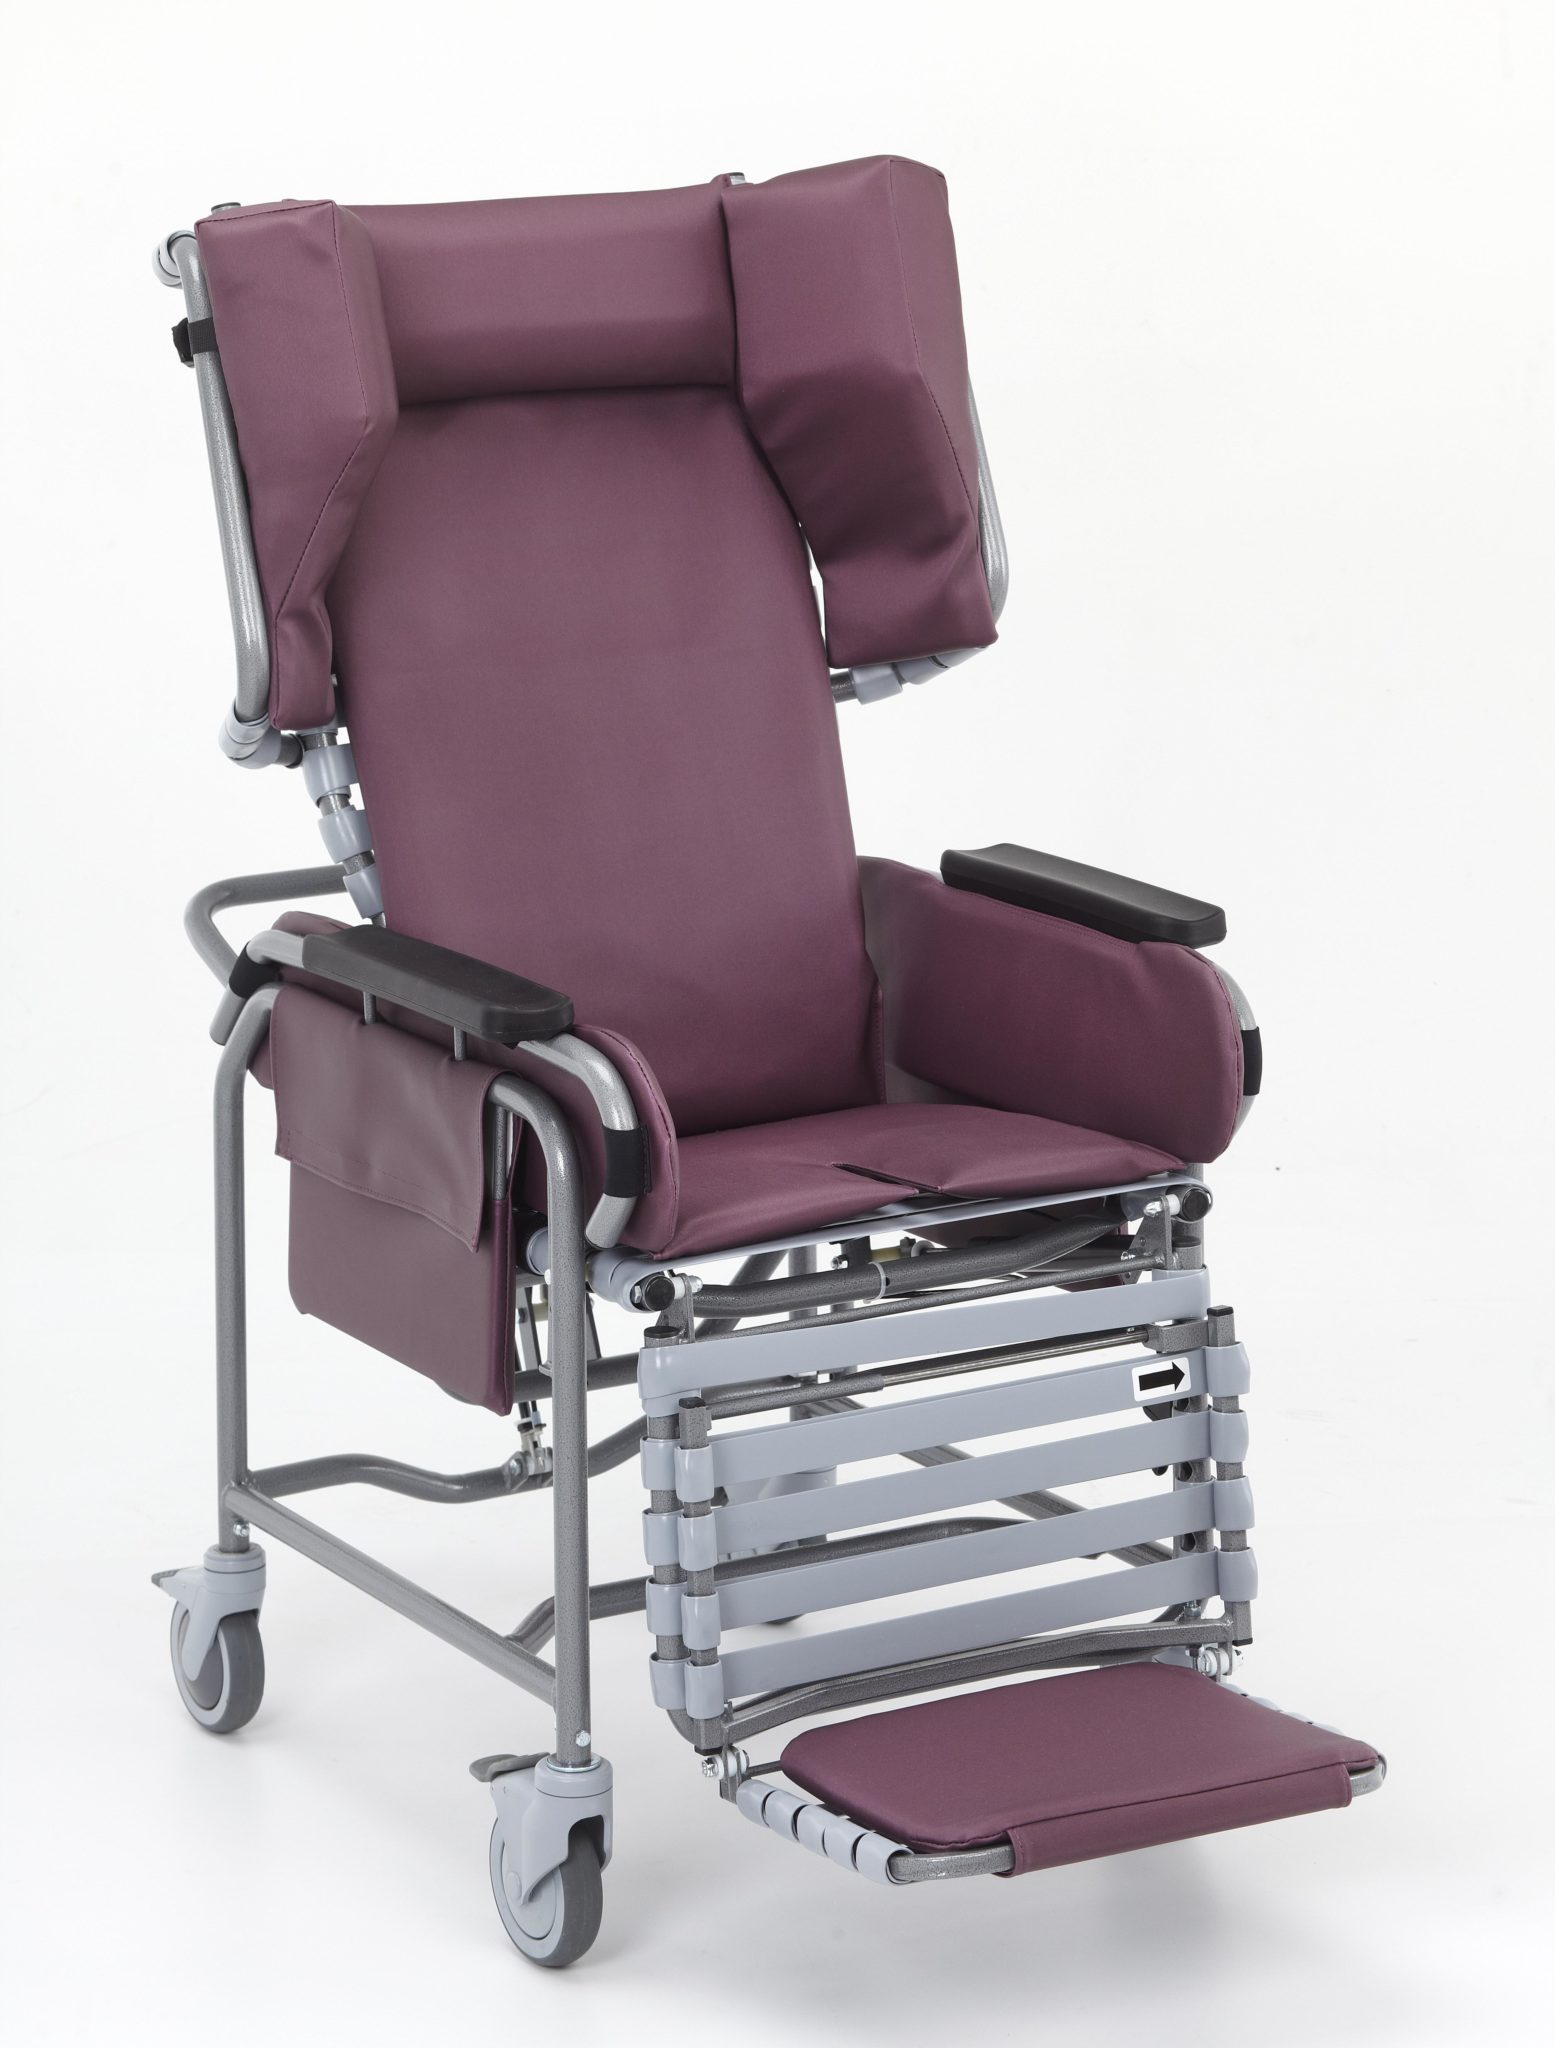 wheel chair for sale stadium chairs at academy broda st paul mn corner home medical